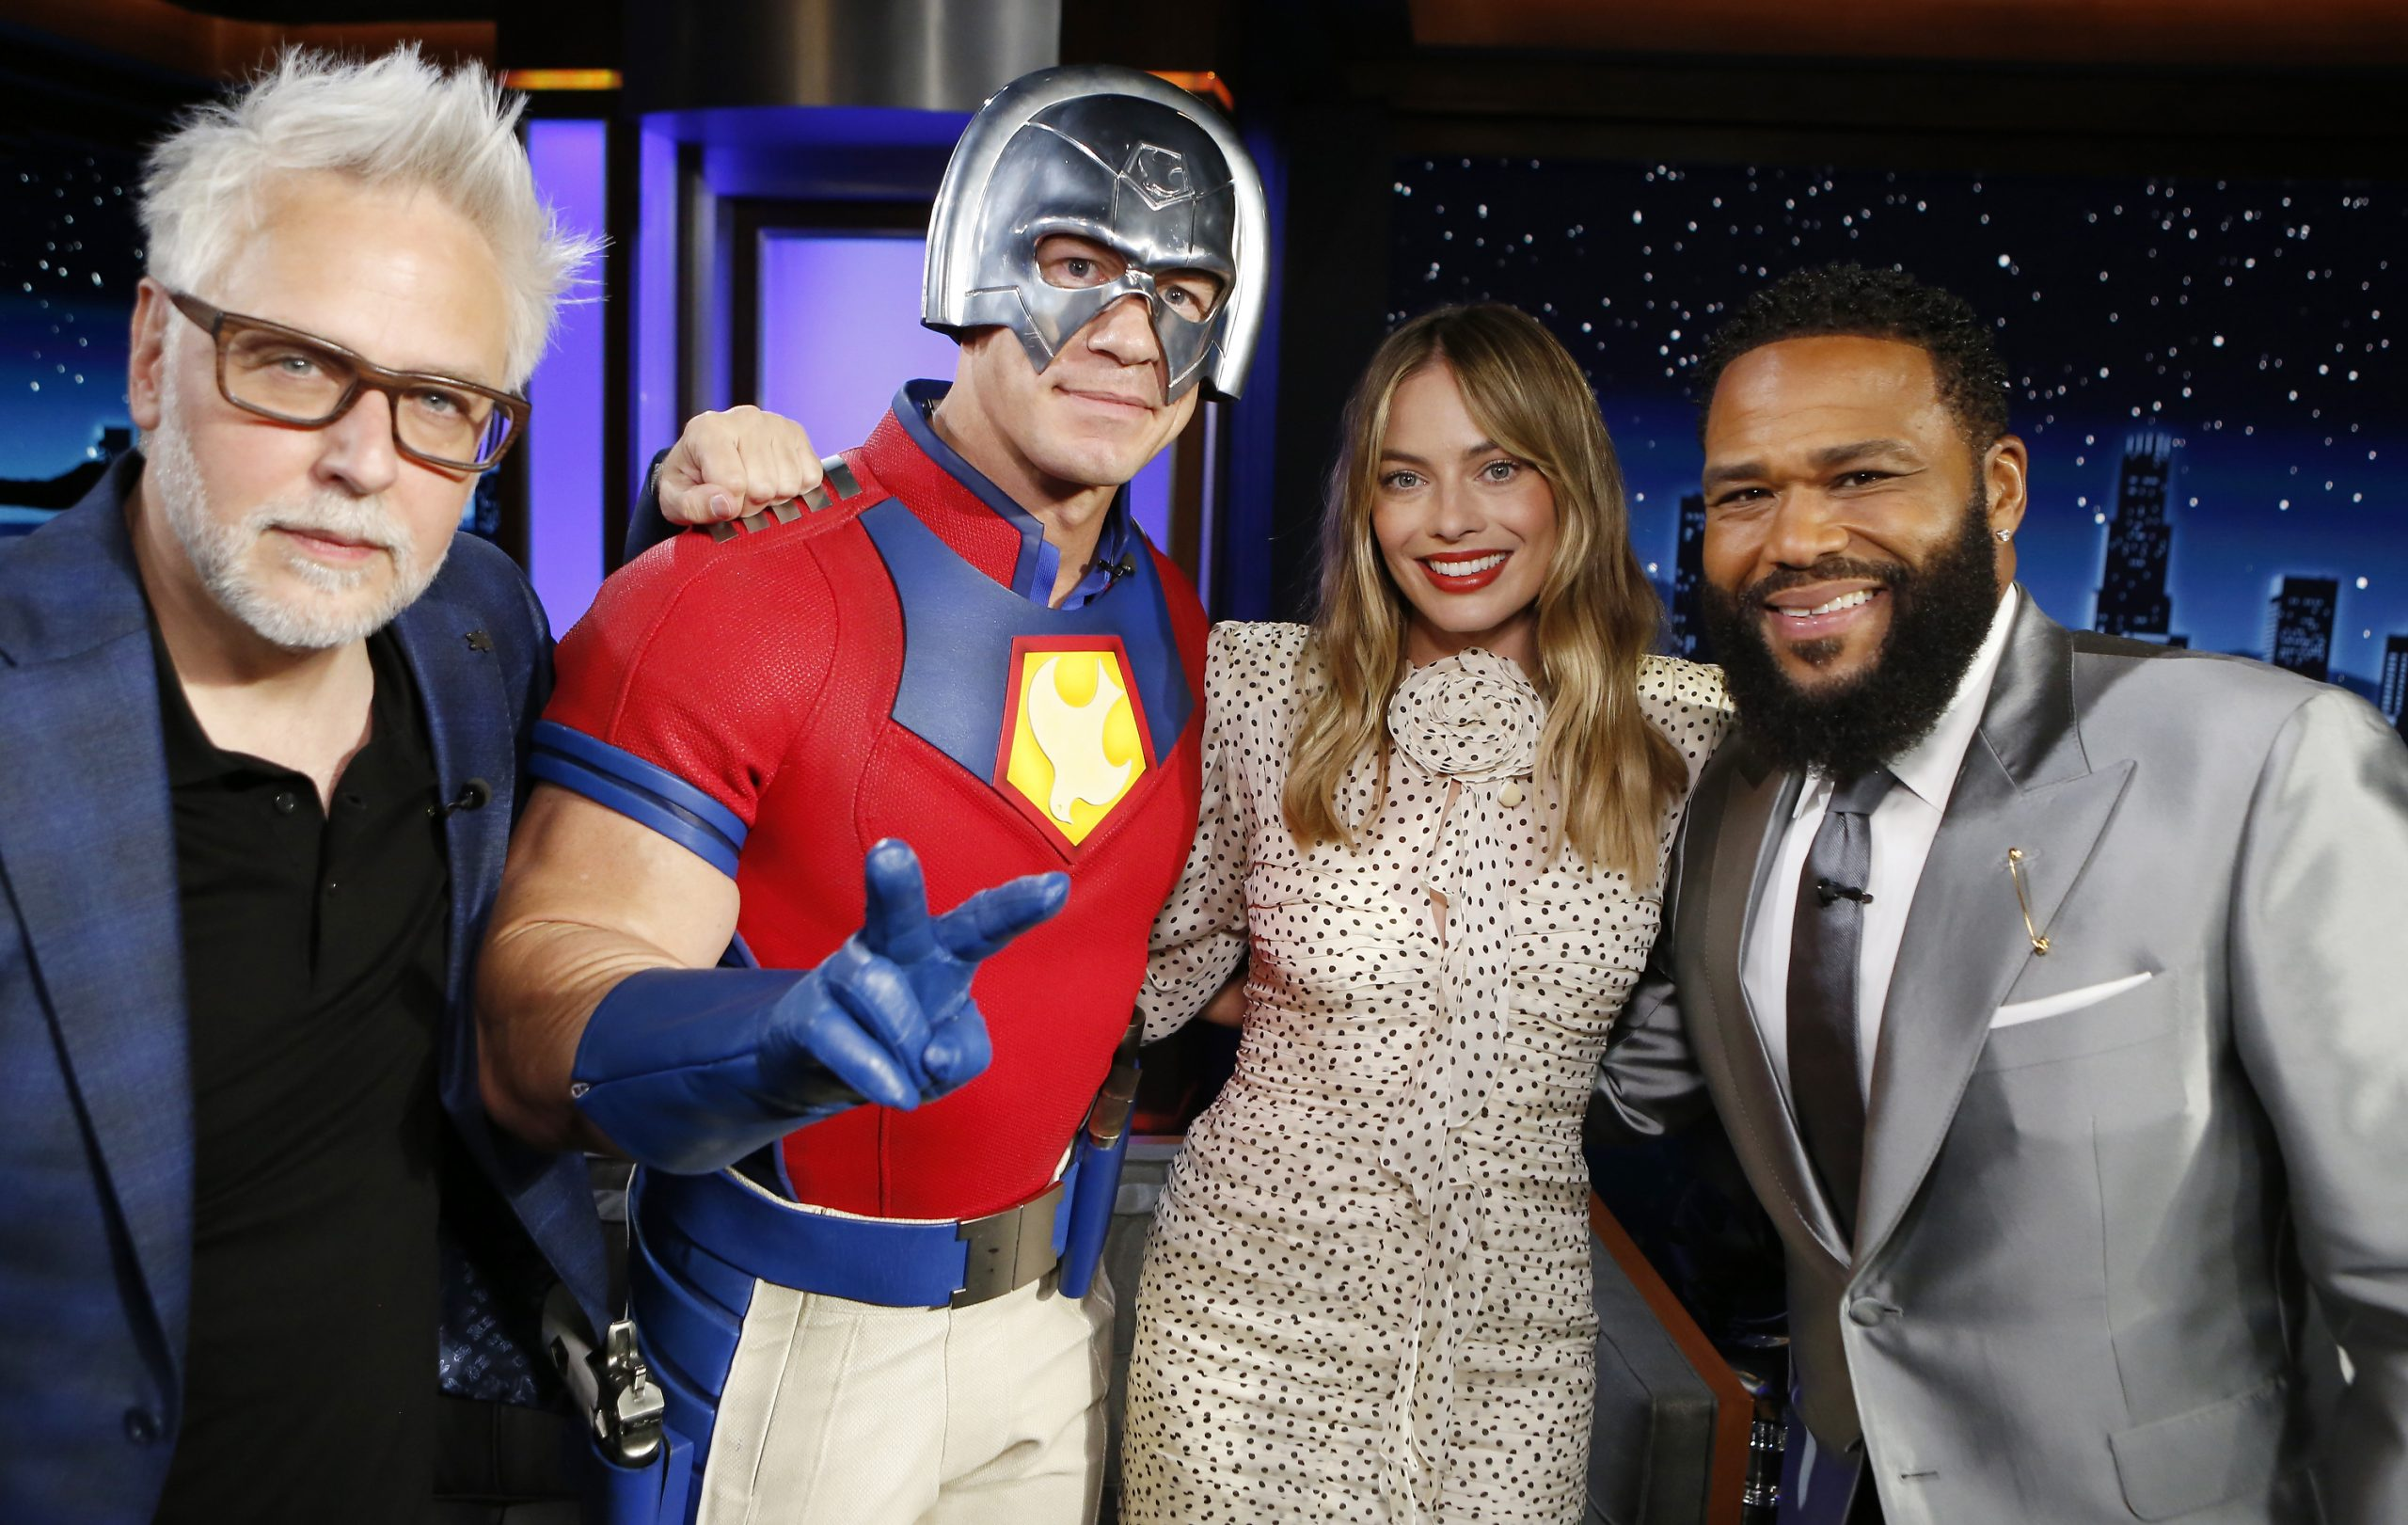 In Case You Missed It: The Cast Of 'The Suicide Squad' Margot Robbie, John Cena And James Gunn Stop By 'Jimmy Kimmel Live'